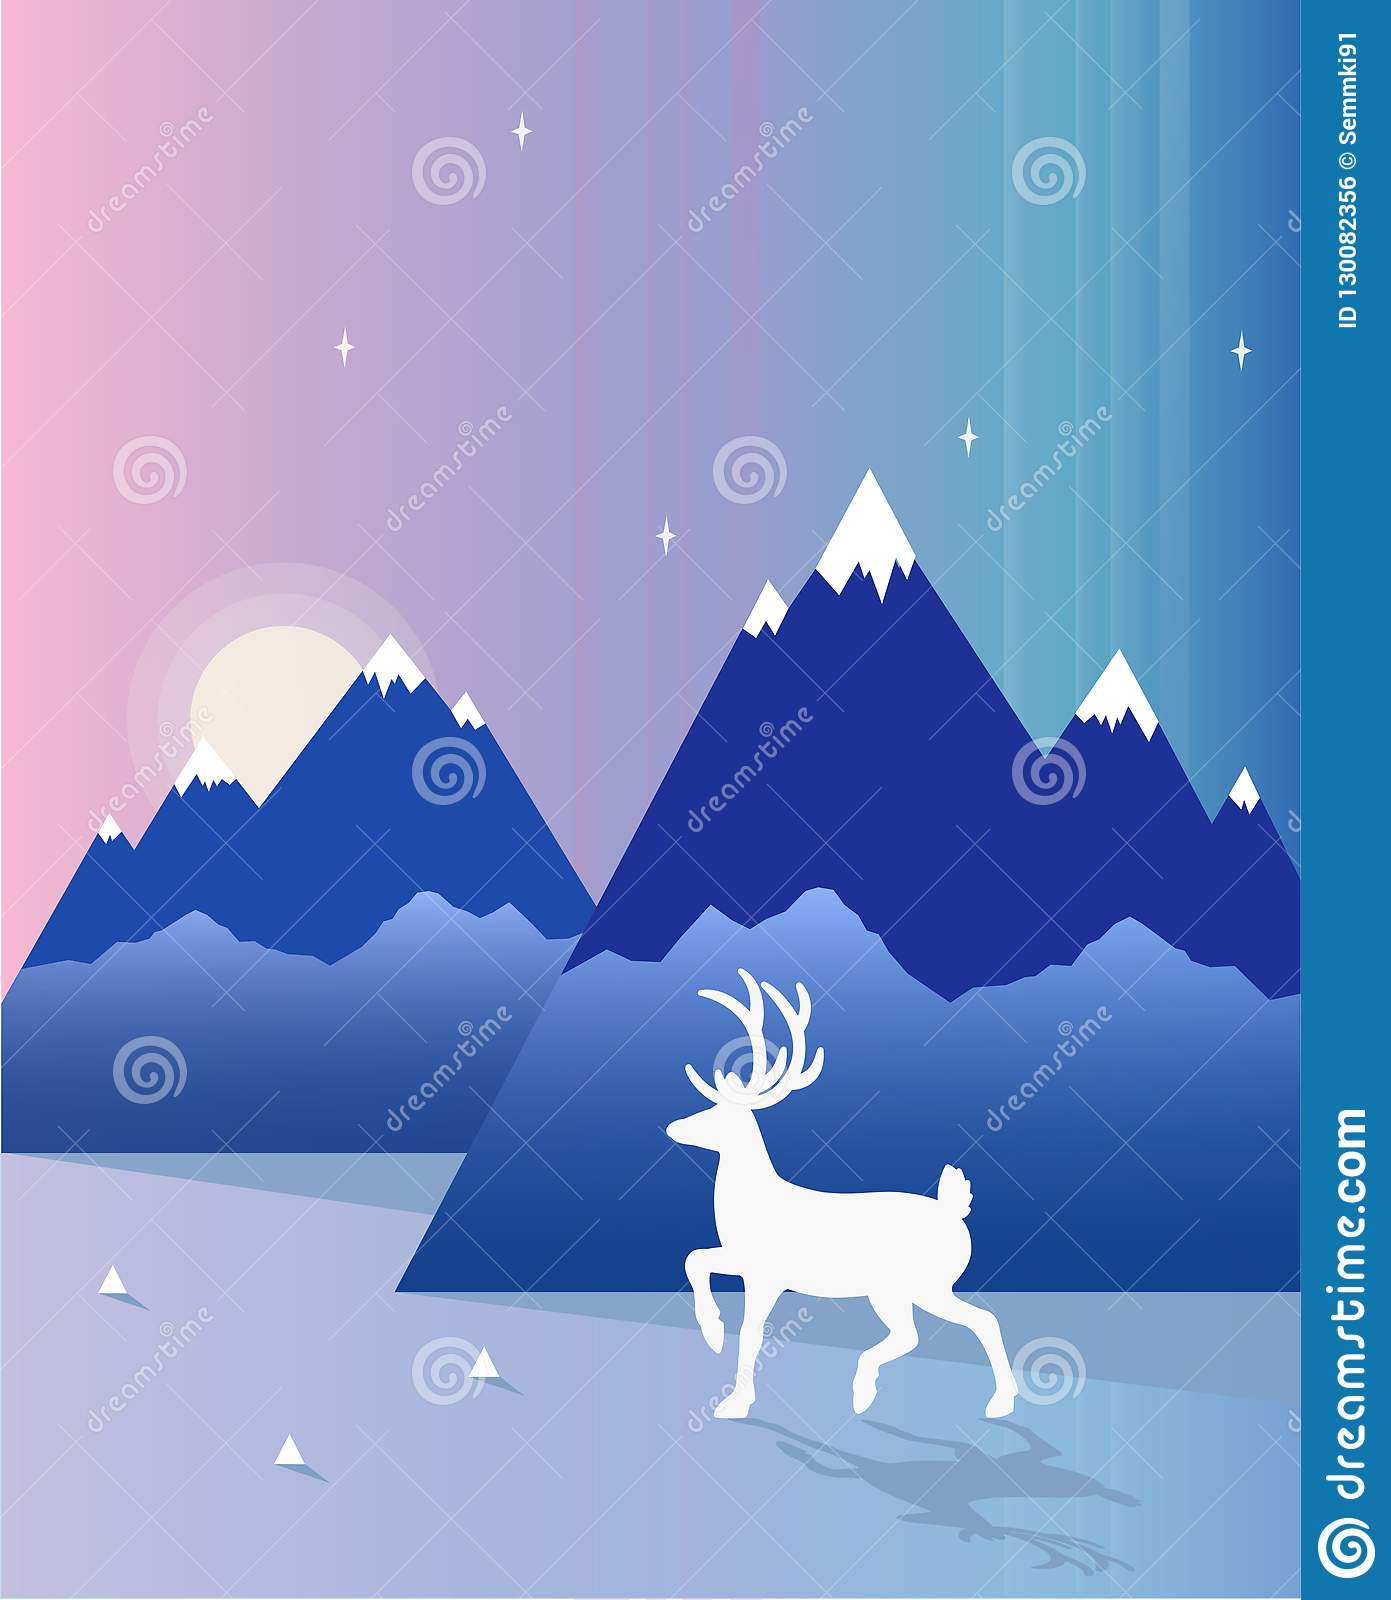 Vector illustration of reindeer in the mountains, flat design